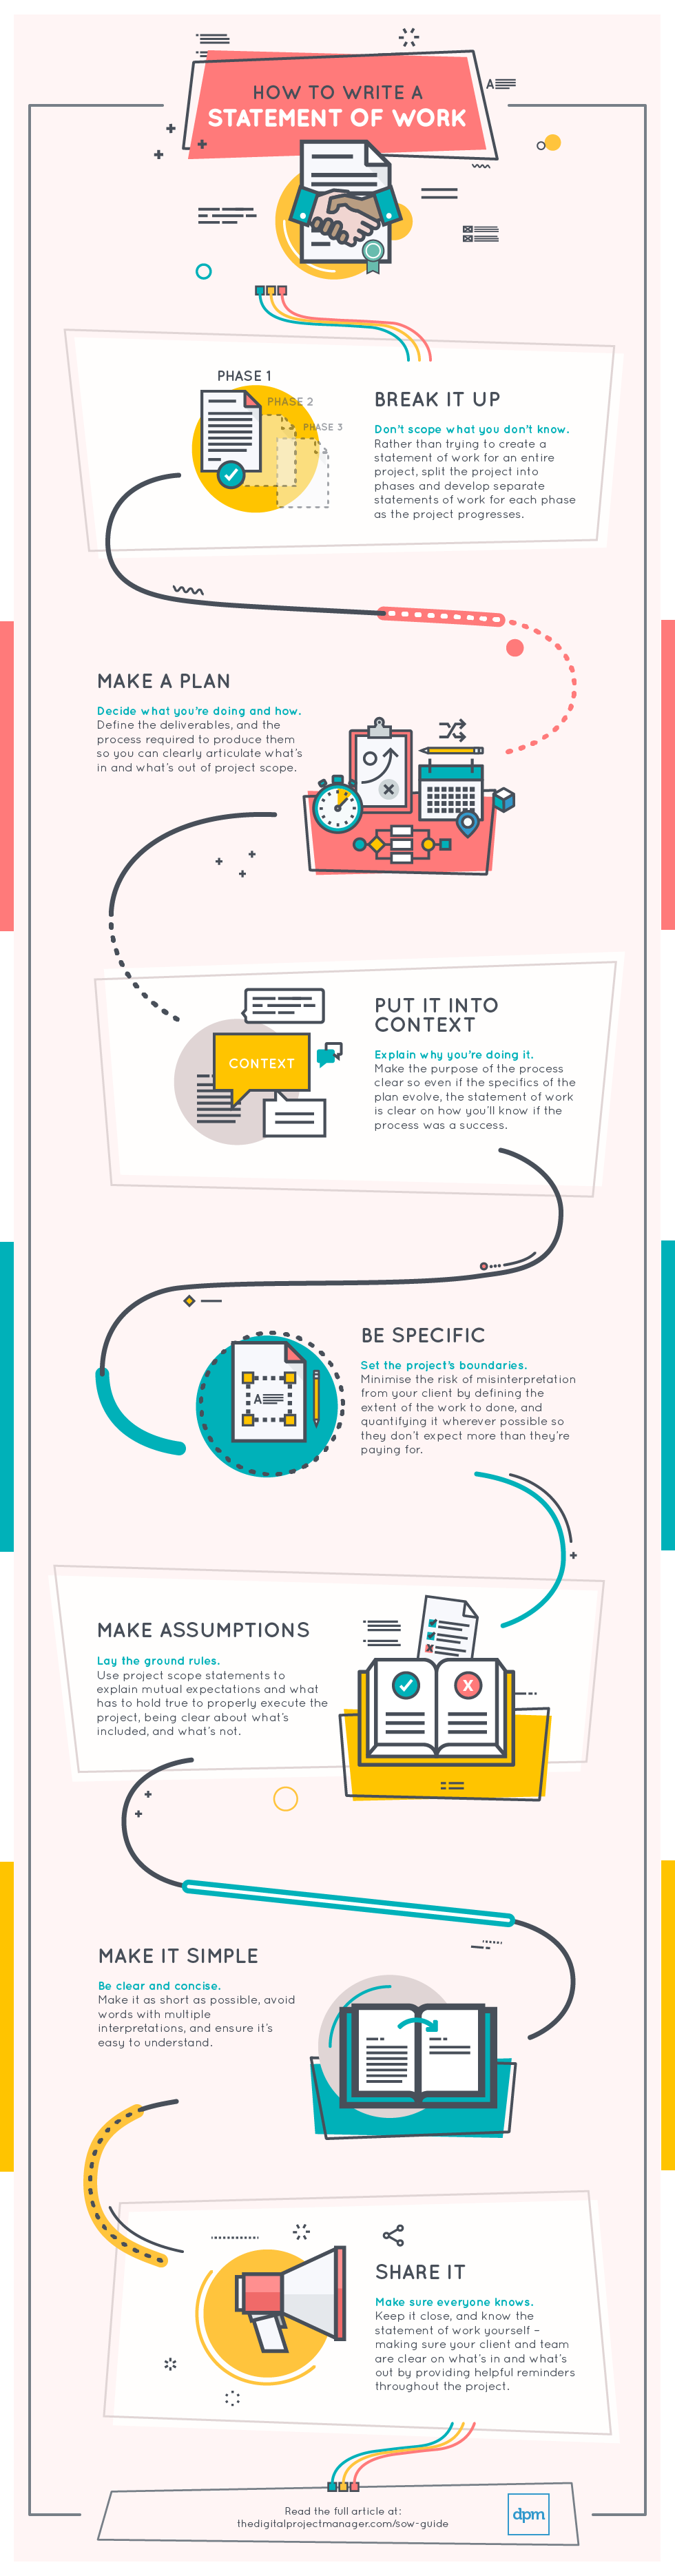 how to write a statement of work infographic project management